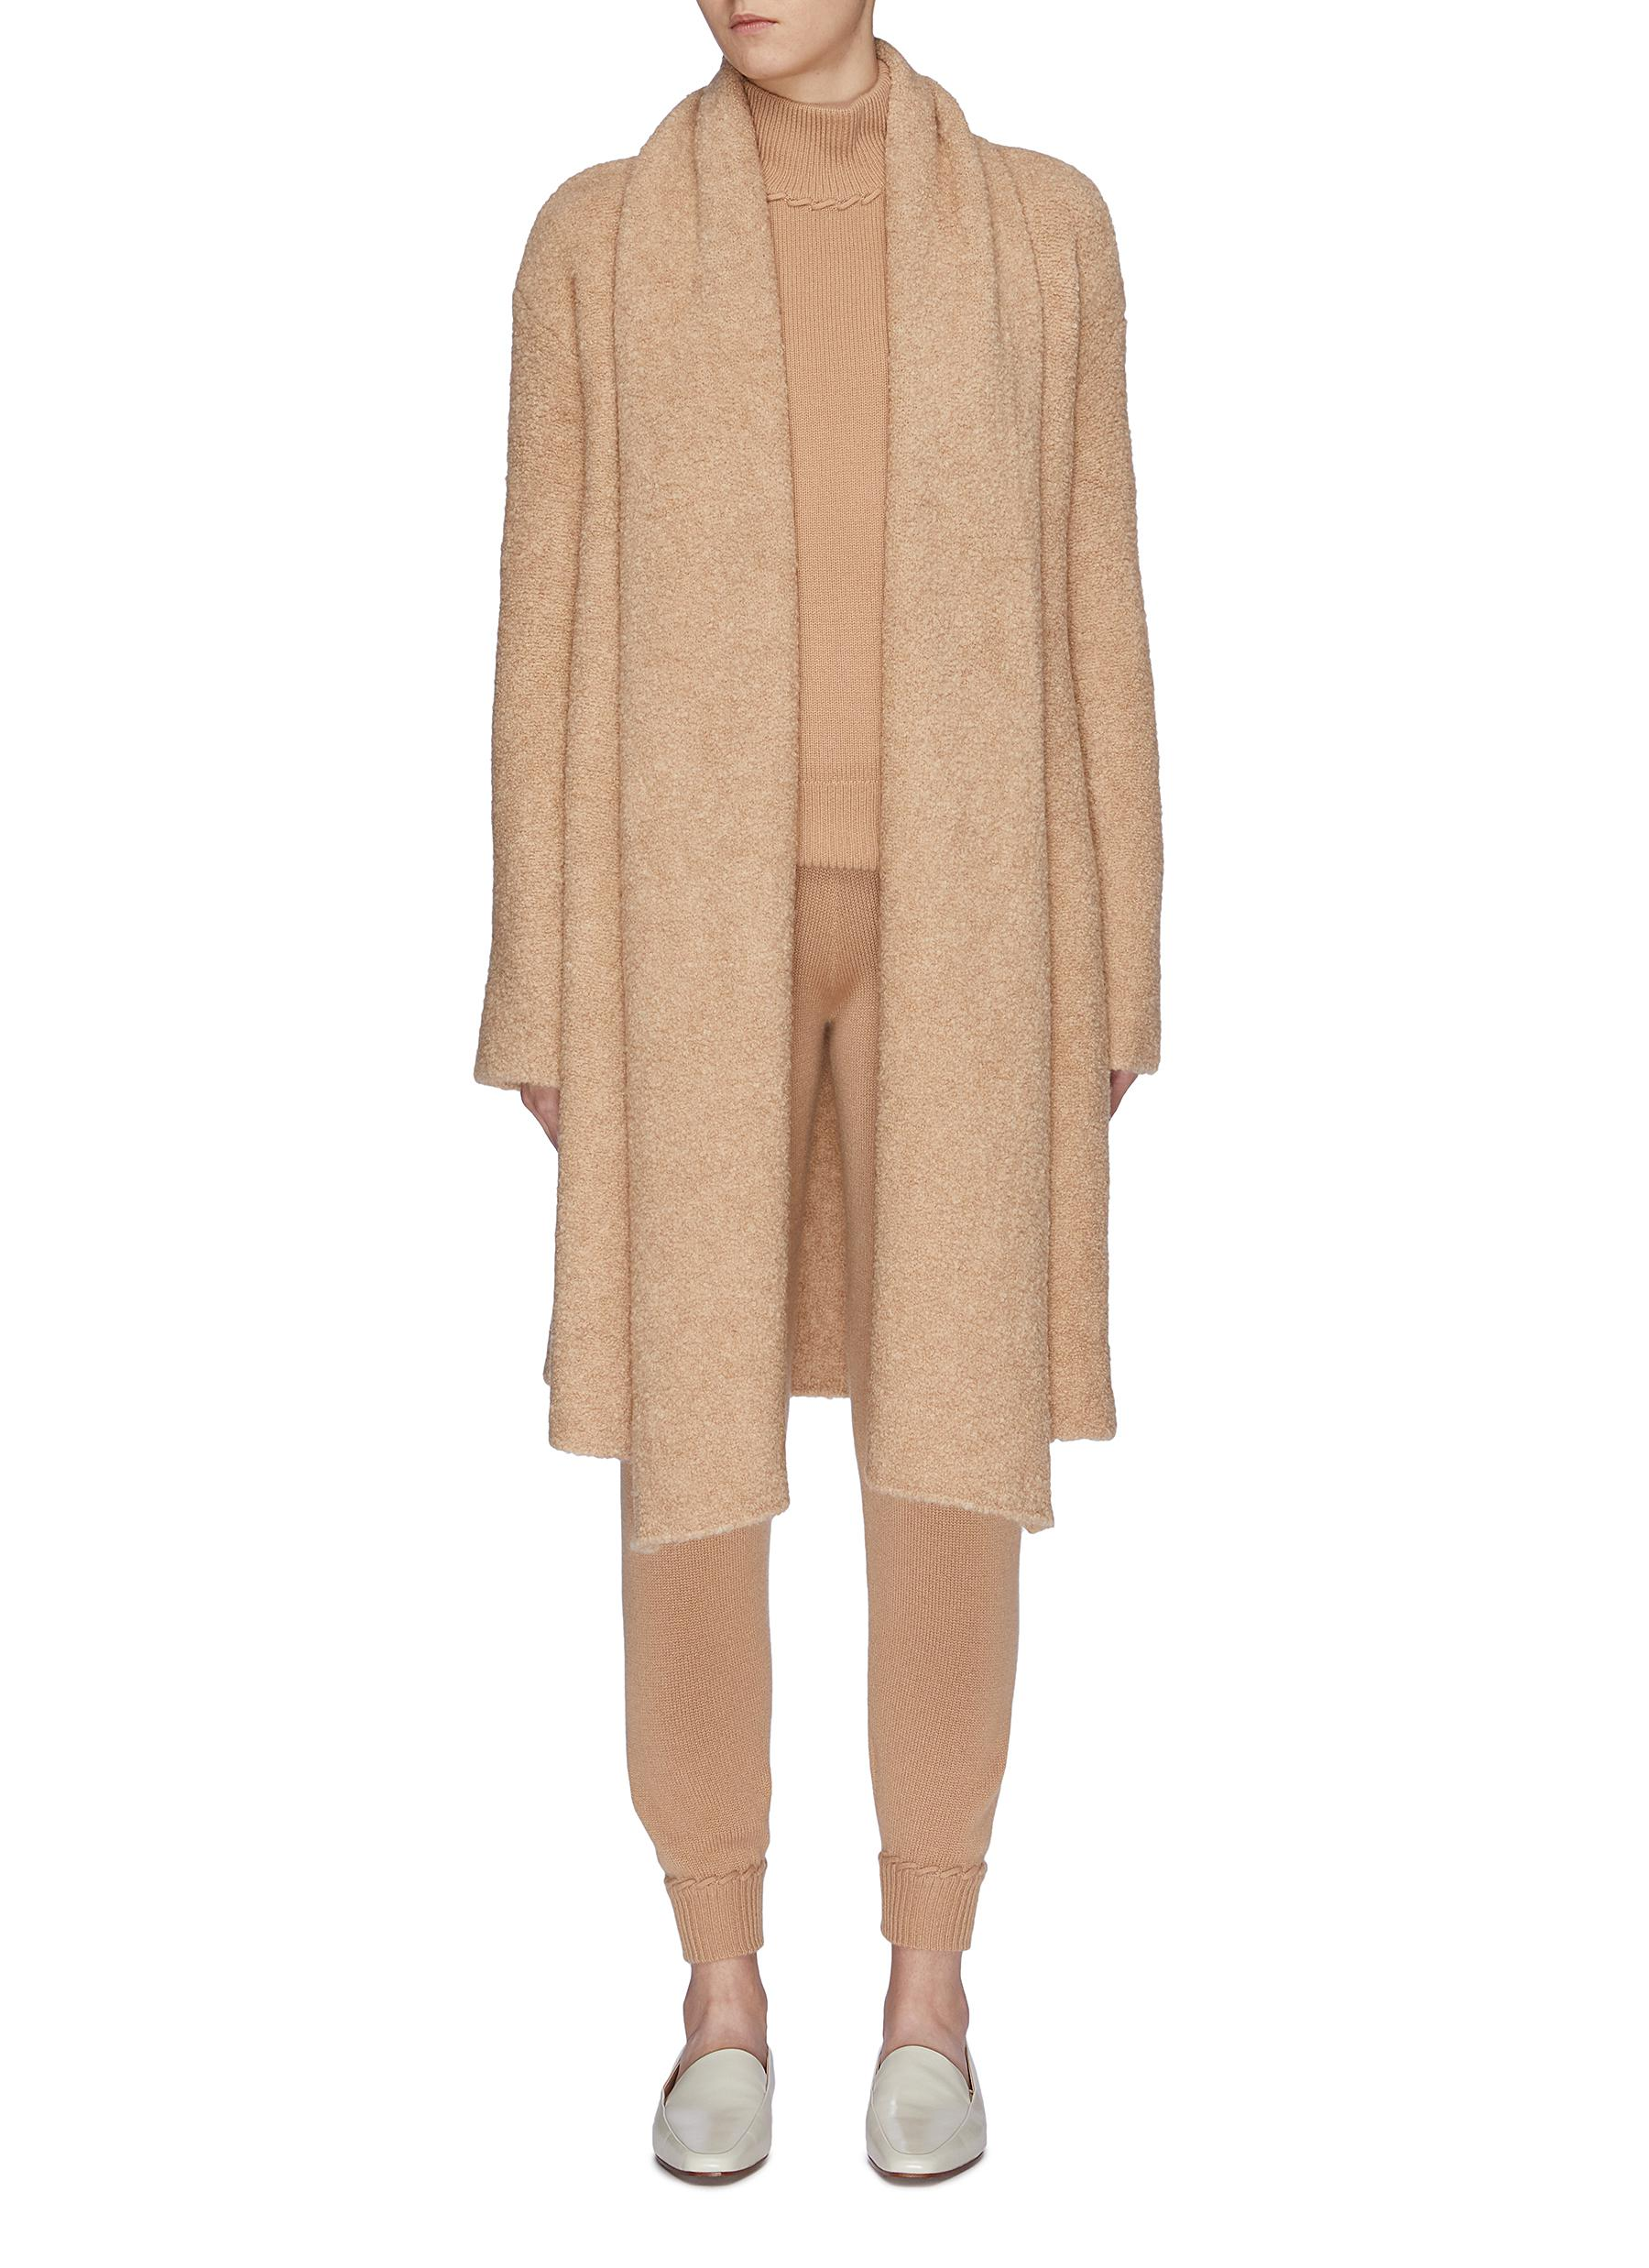 Drape panel bouclé cardigan by Theory